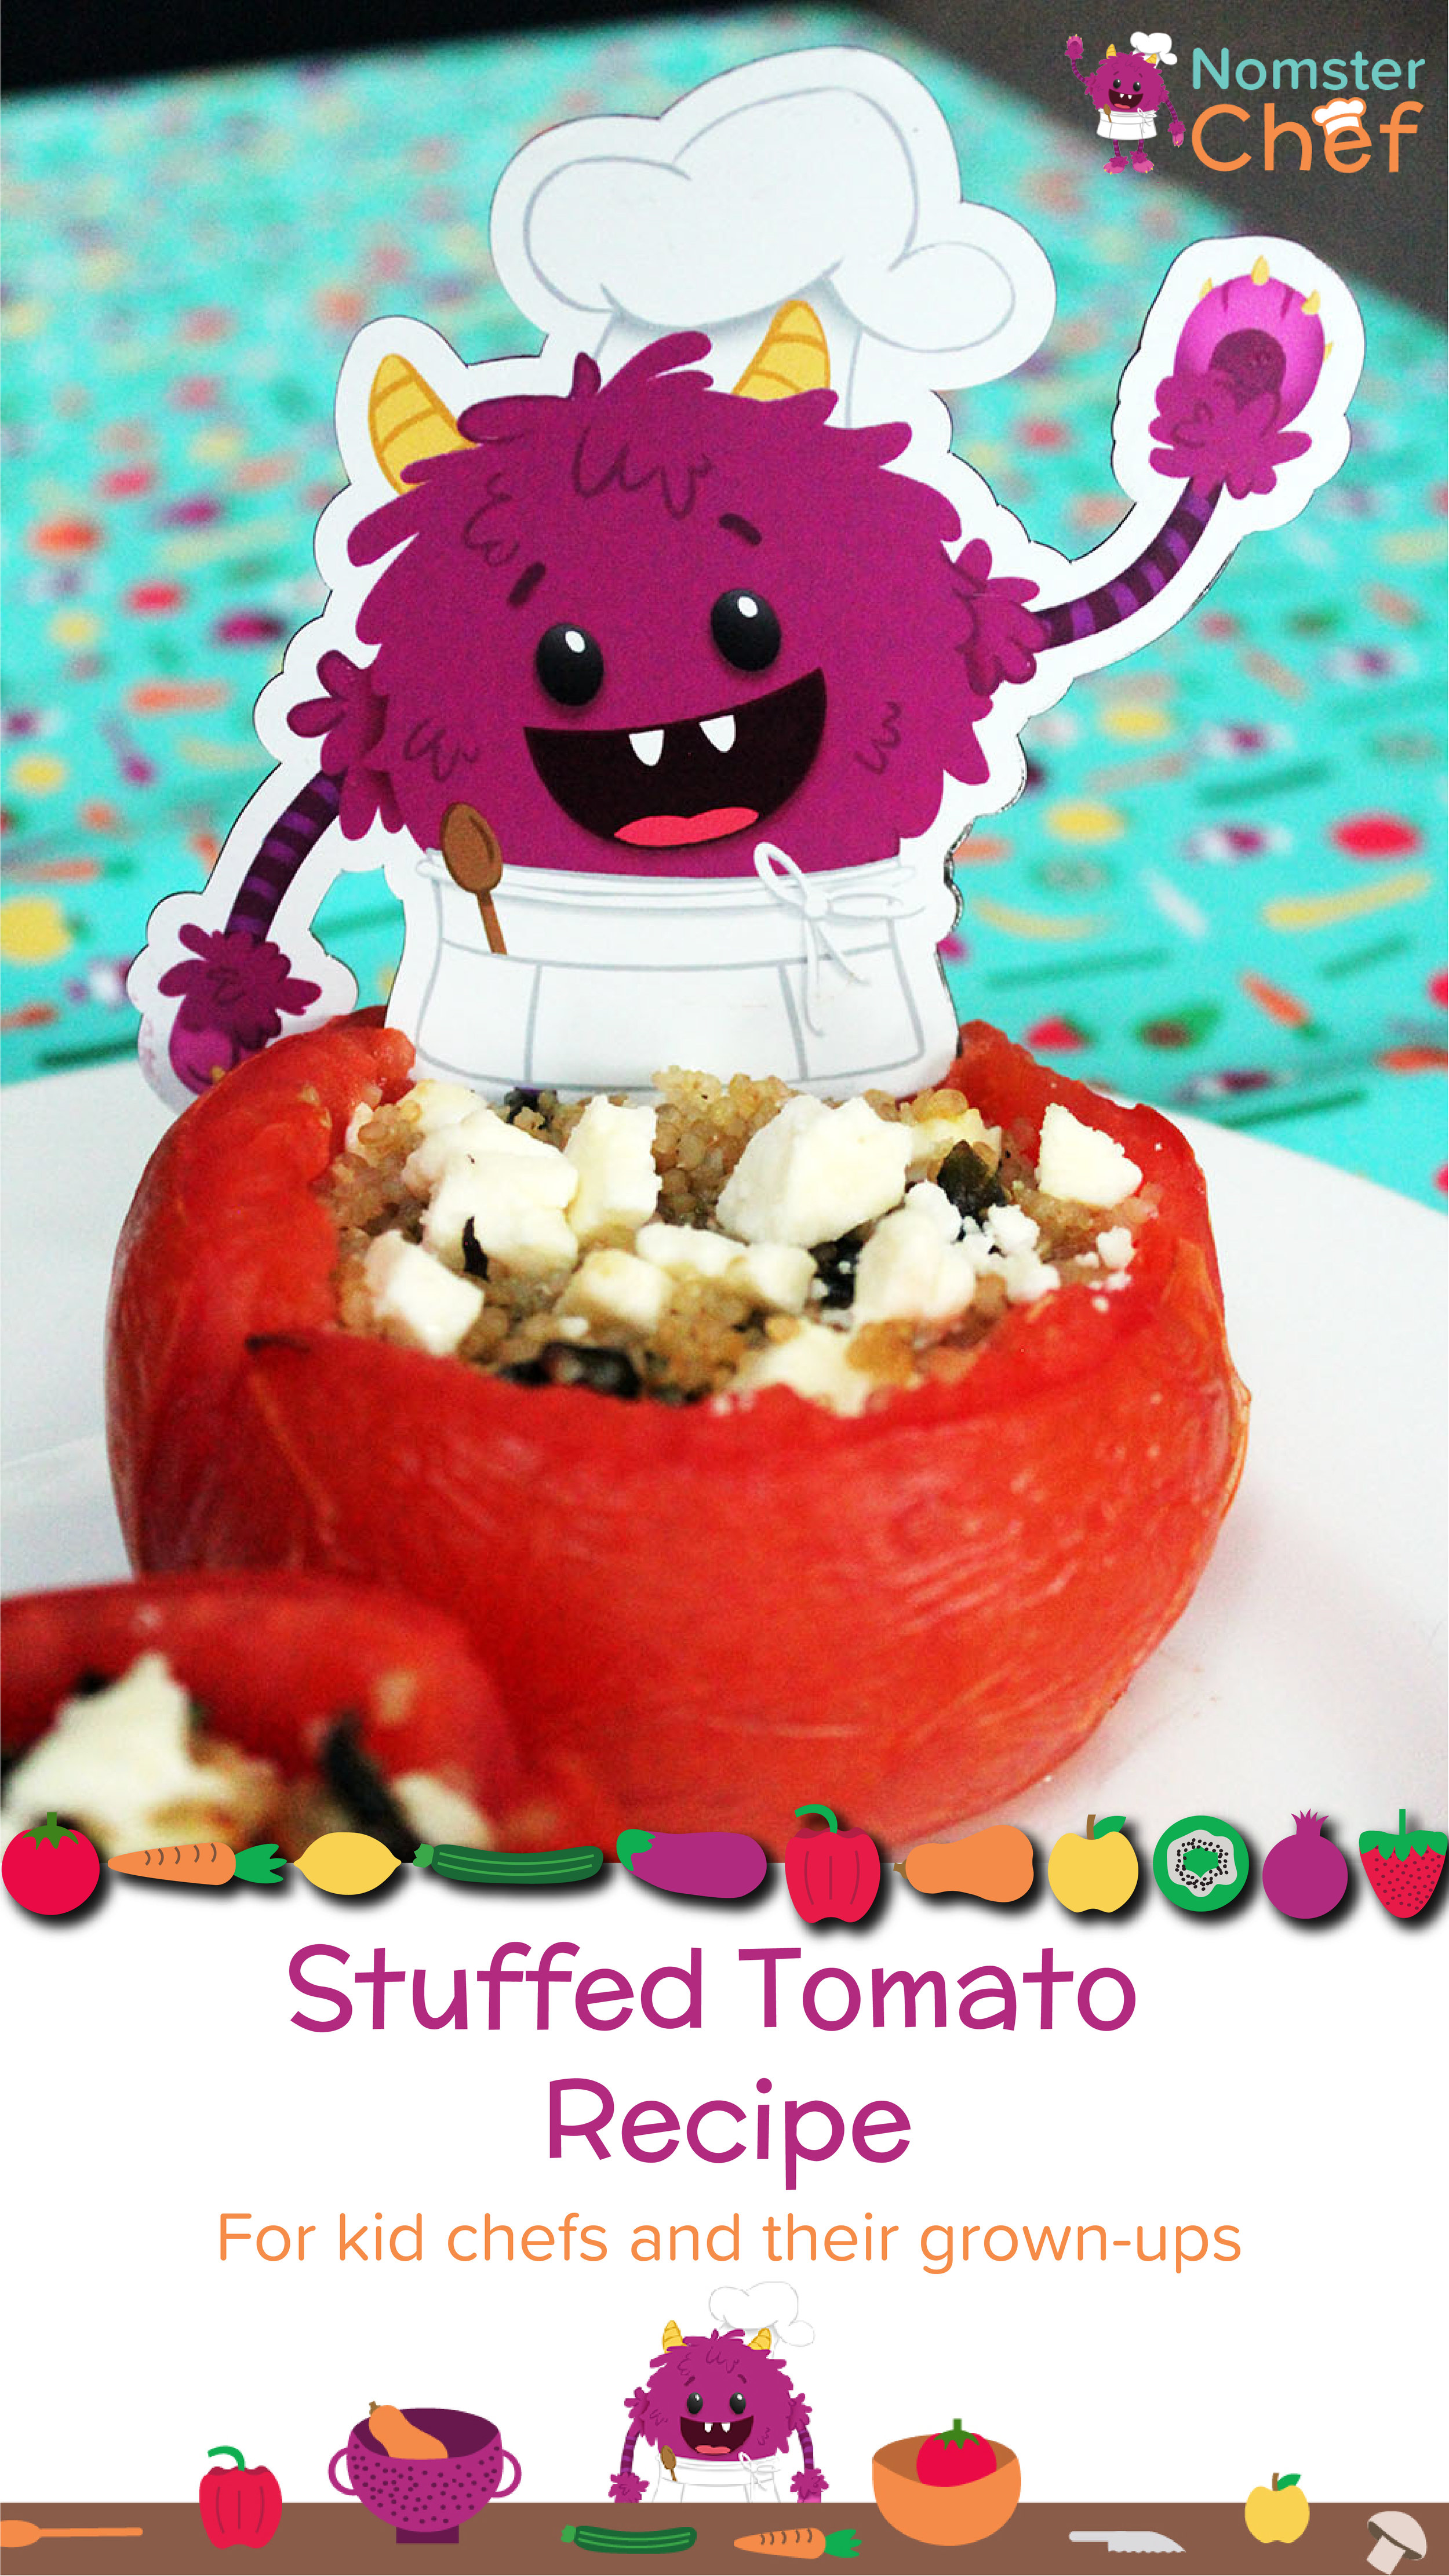 T is for Tomato - Stuffed Tomatoes - Nomster Chef